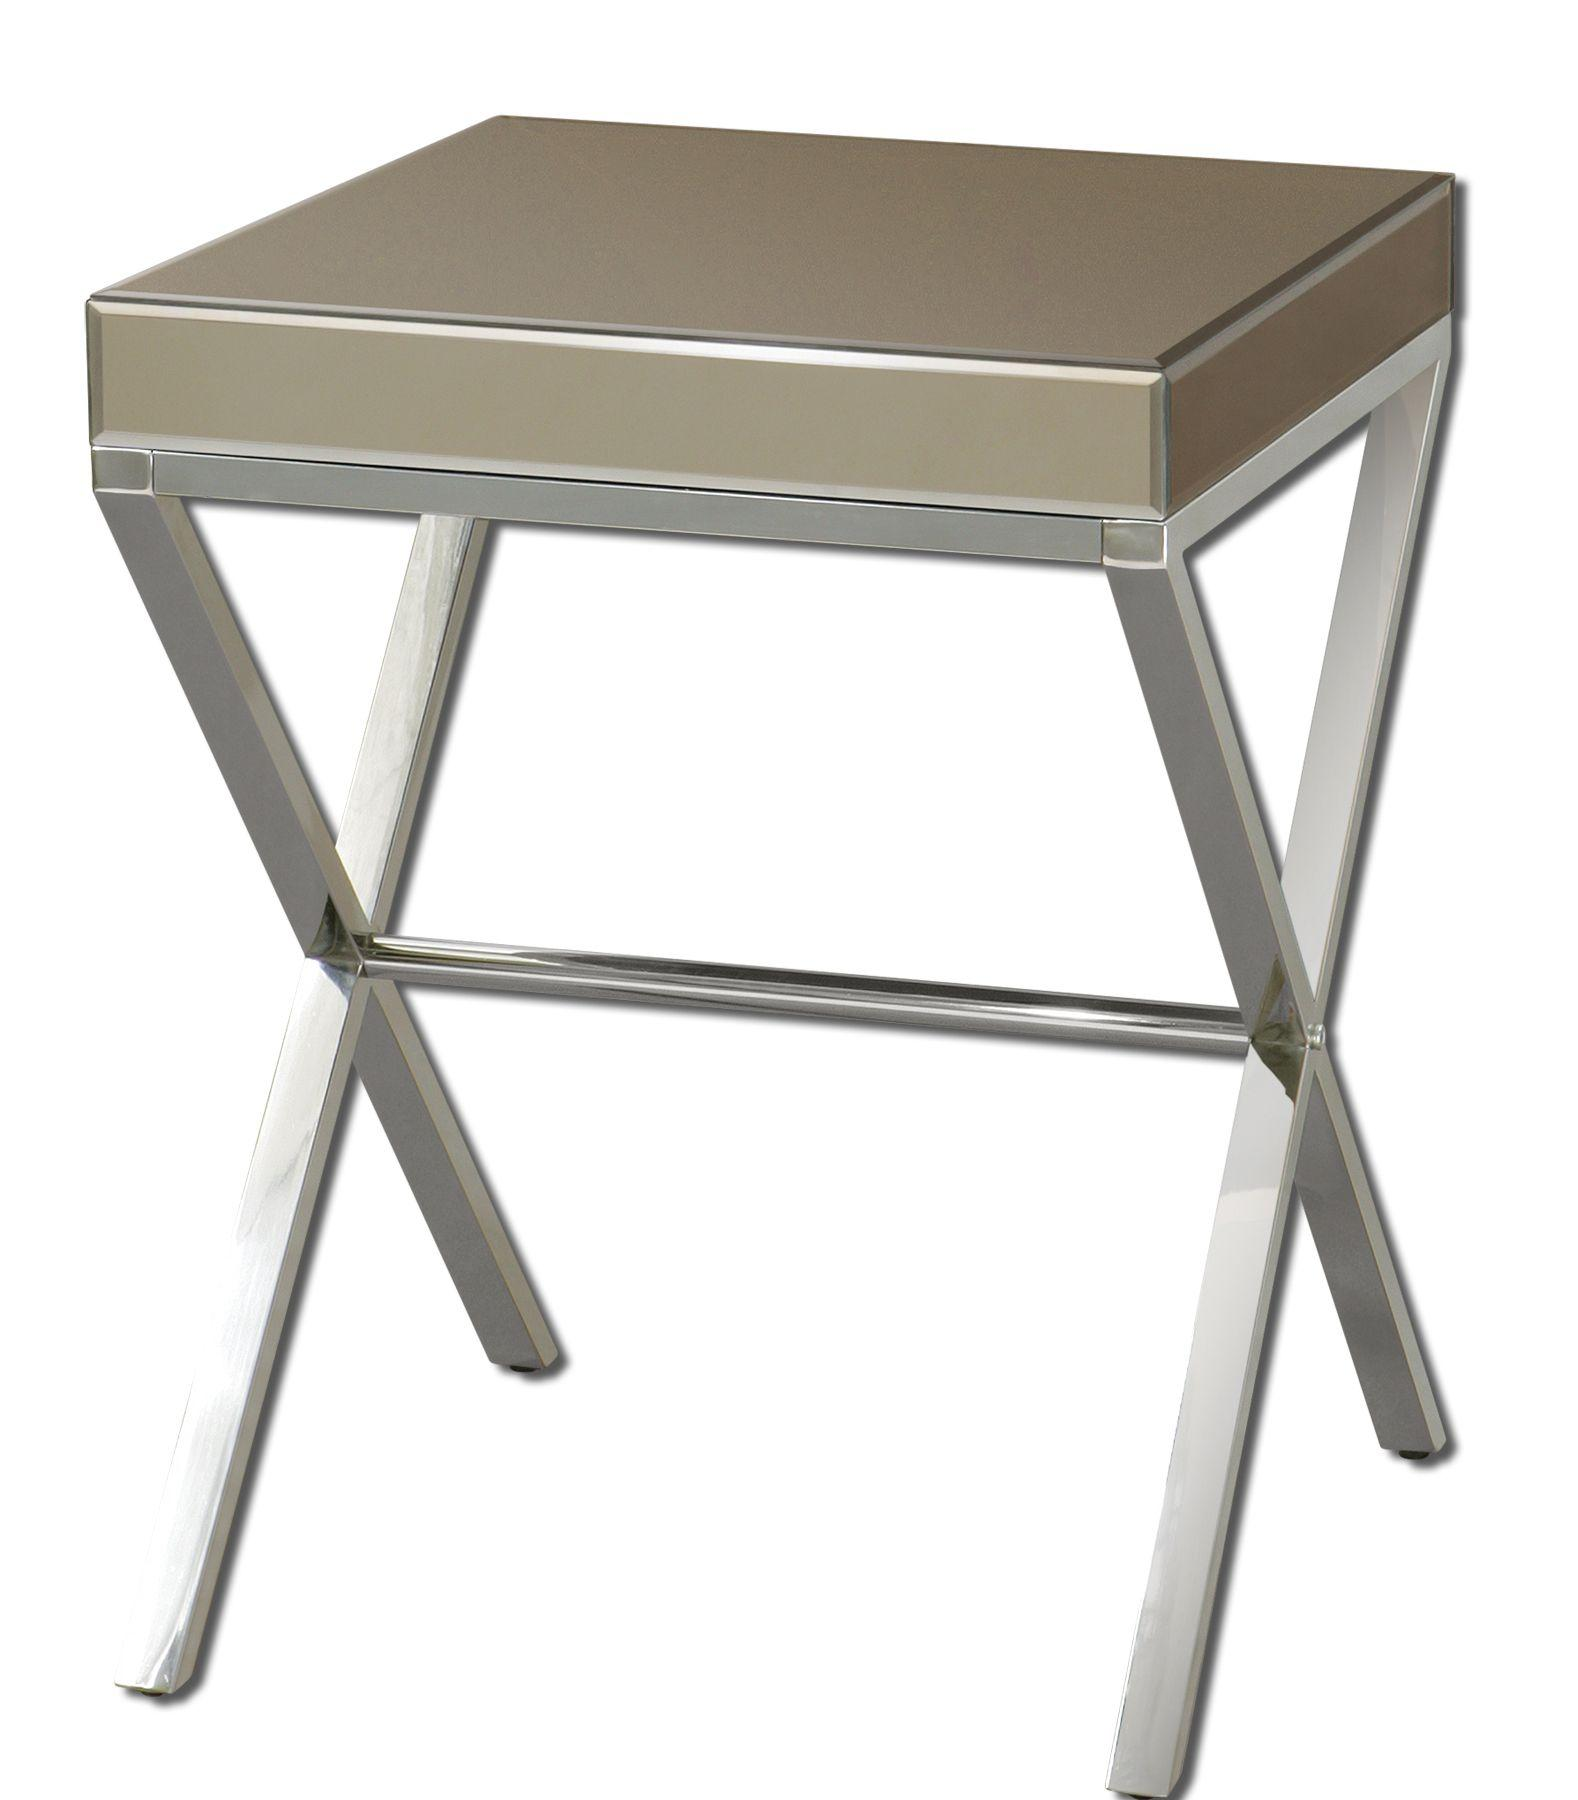 Uttermost Accent Furniture Lexia Side Table - Item Number: 24299